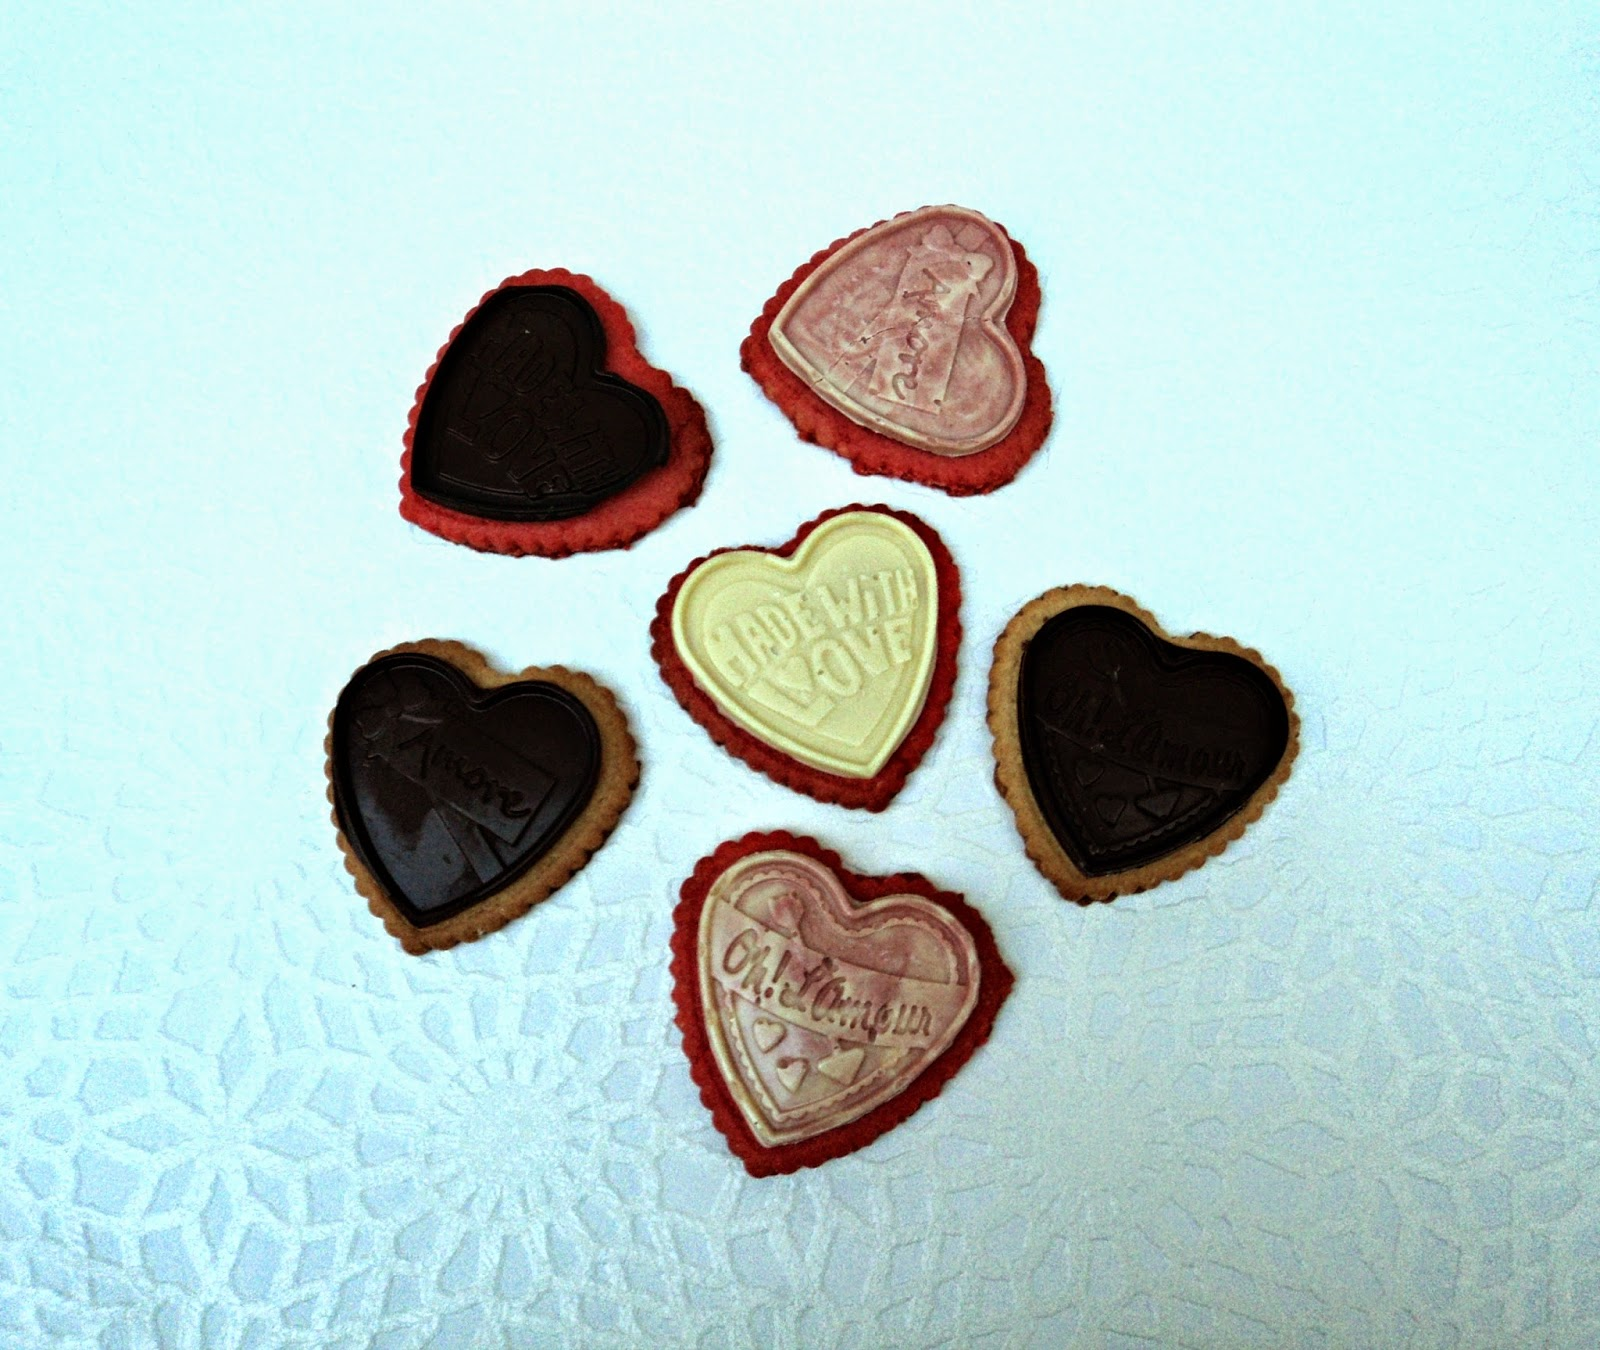 galletas-vainilla-chocolate-corazon